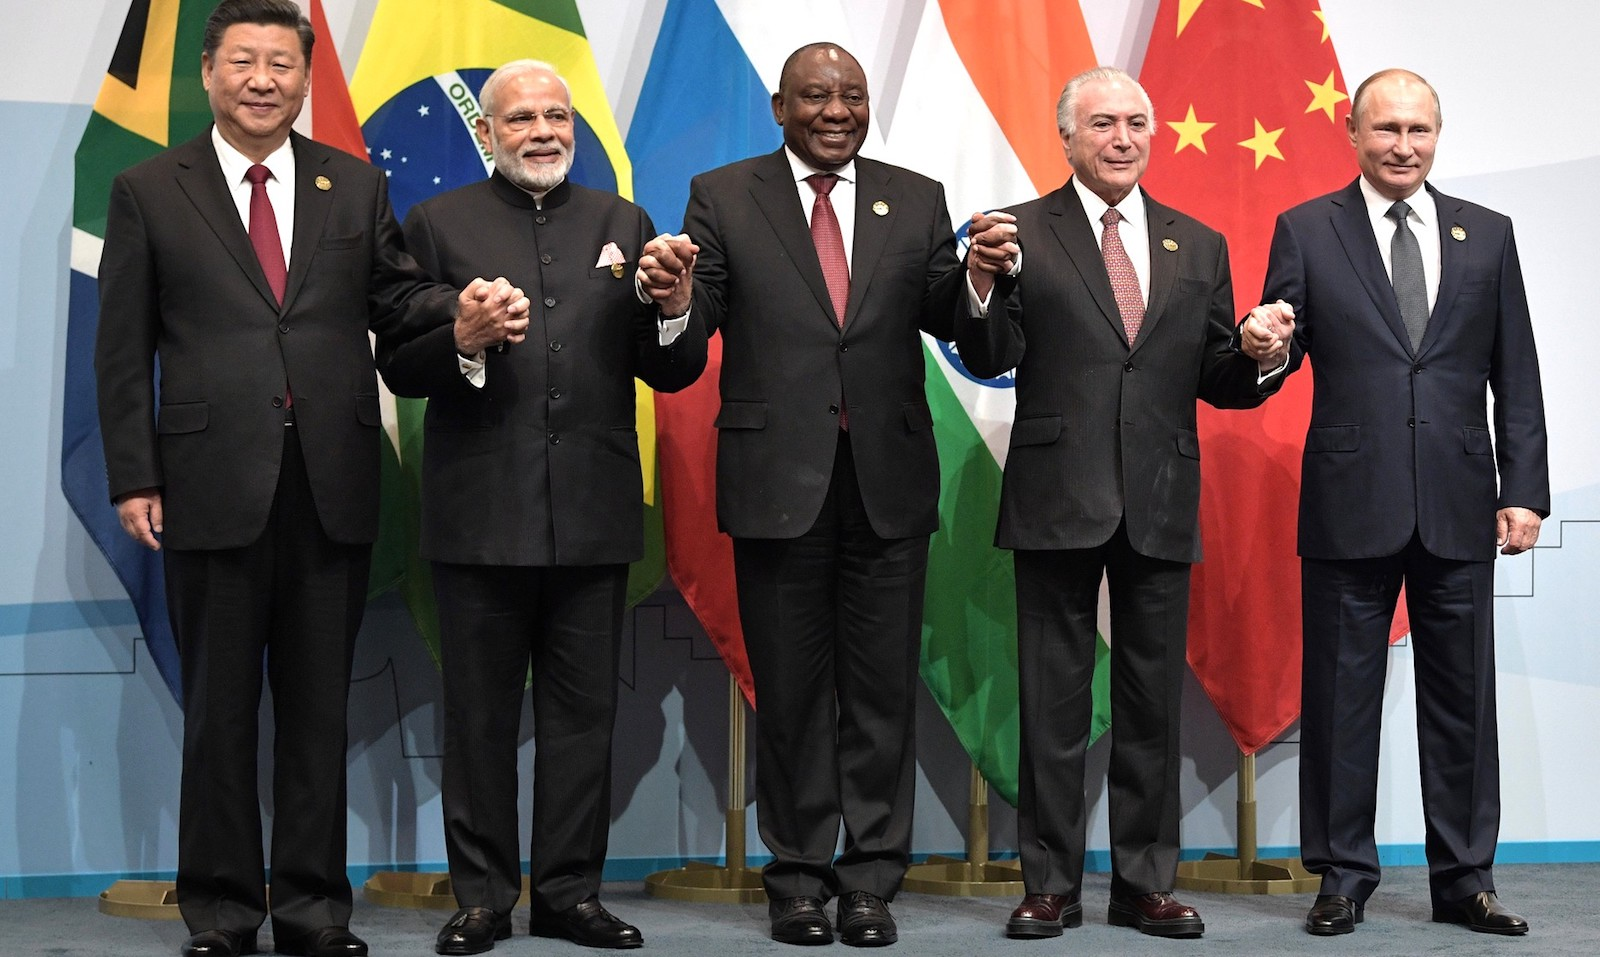 Representatives of the BRICS nations in Johannesburg, South Africa (Photo: Kremlin.ru)